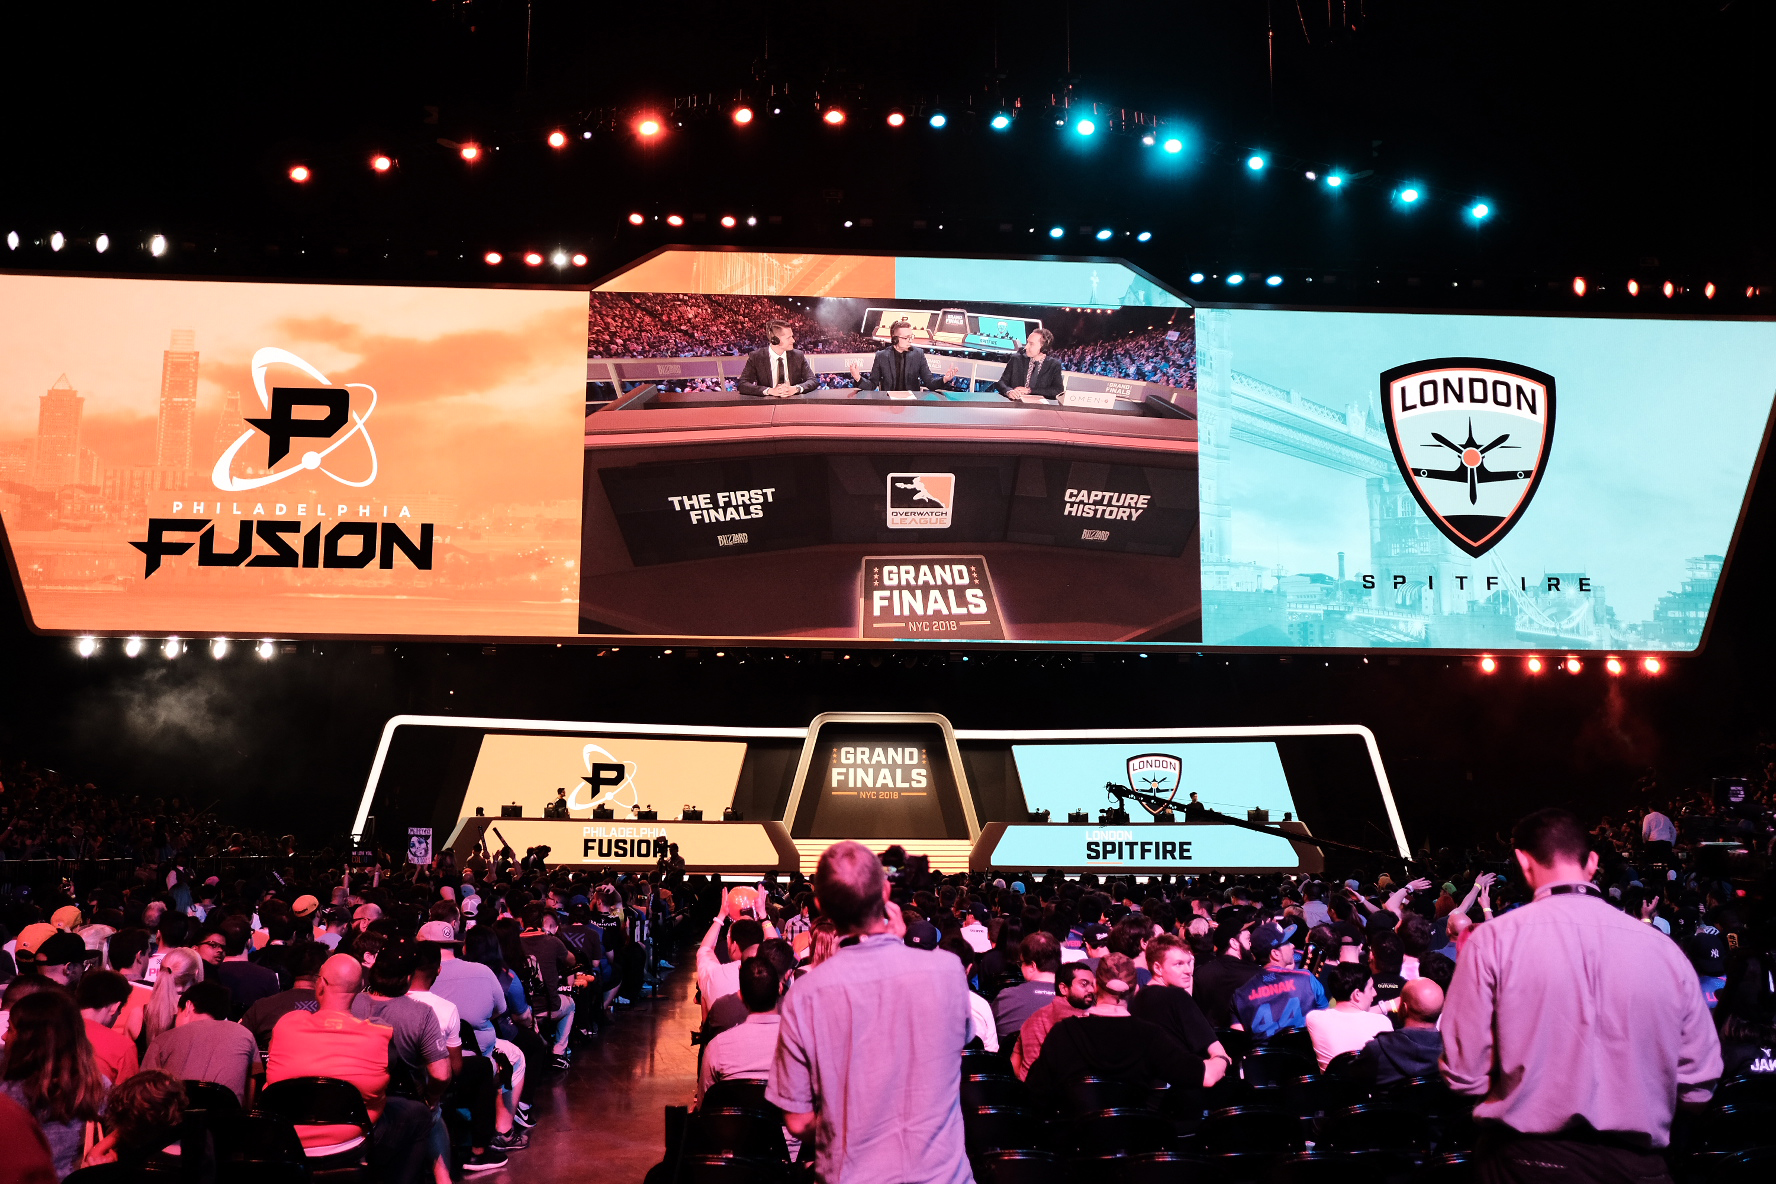 Fans wait for day 1 London Spitfire vs Philadelphia Fusion to begin during the Overwatch League Grand Finals 2018 at Barclays Center on July 27, 2018 in the Brooklyn borough of New York City.  Photo by JD Barnes / ESPAT Media